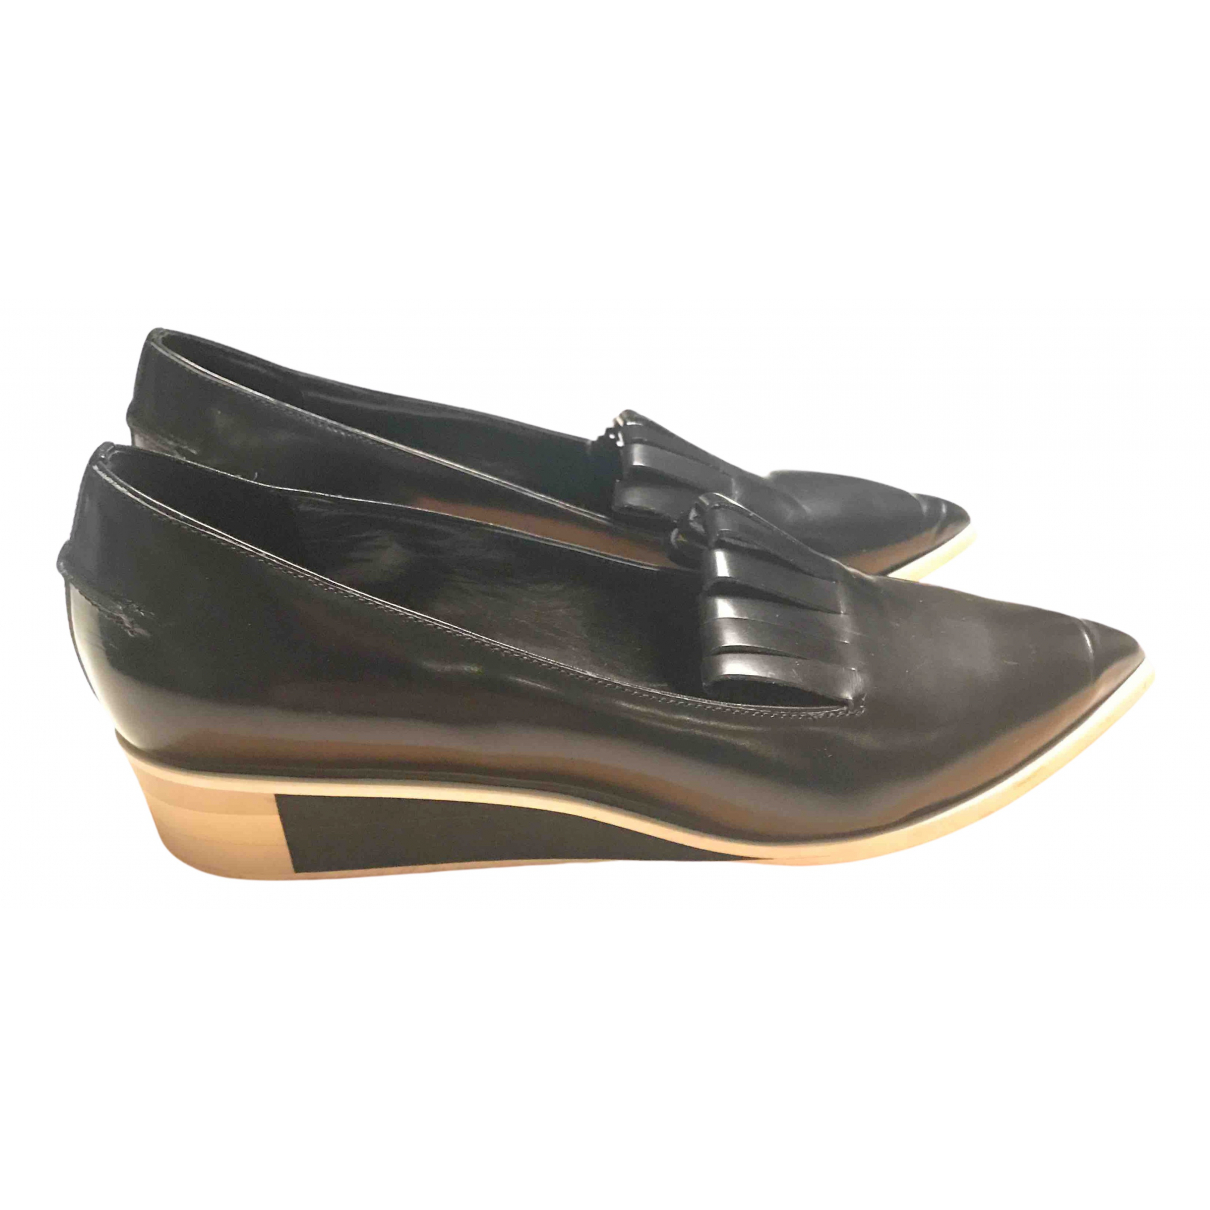 Acne Studios N Black Leather Flats for Women 37 EU